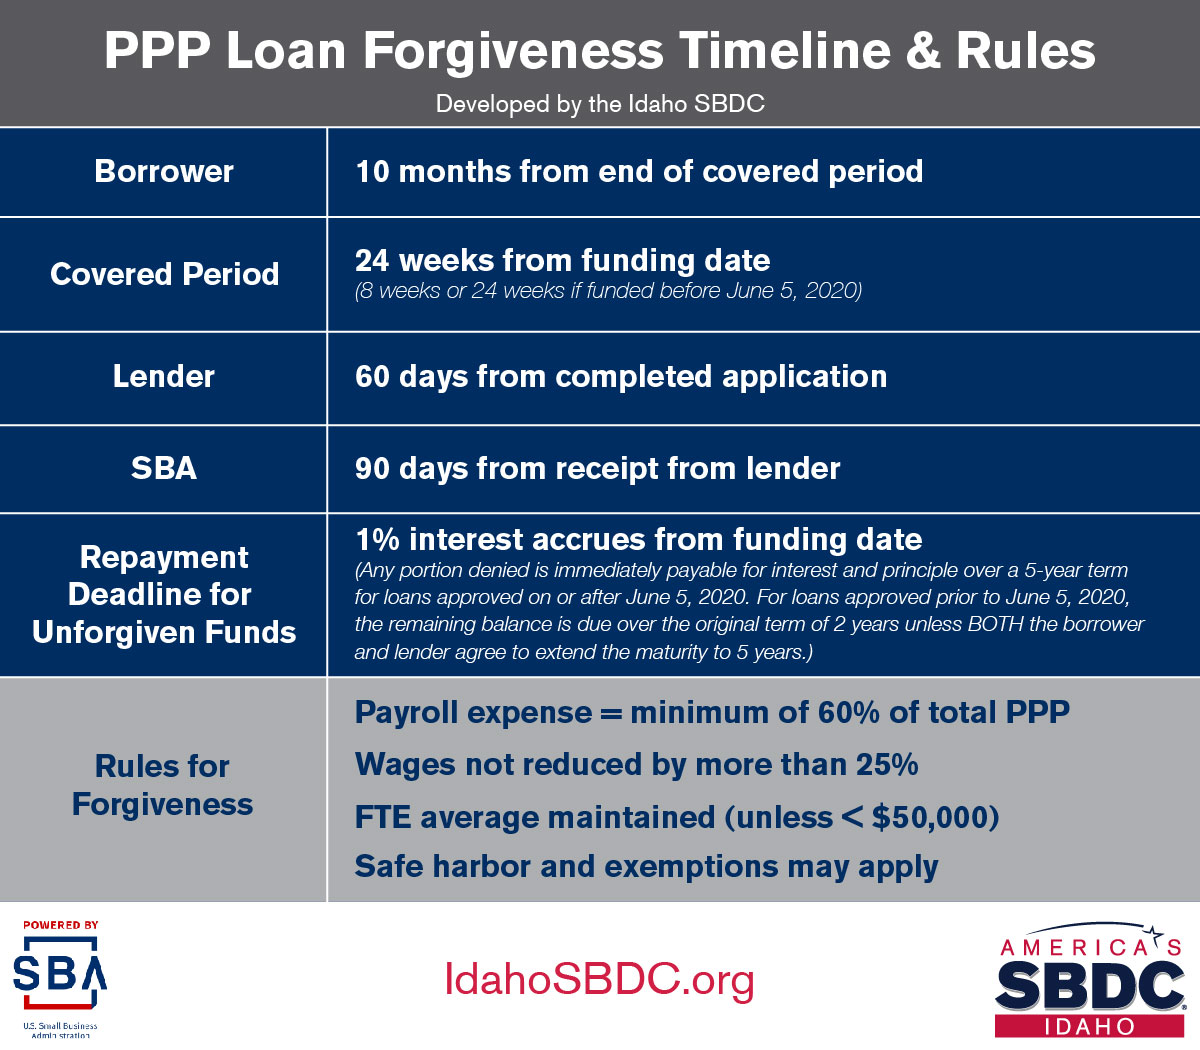 PPP Loan Forgiveness Timeline & Rules